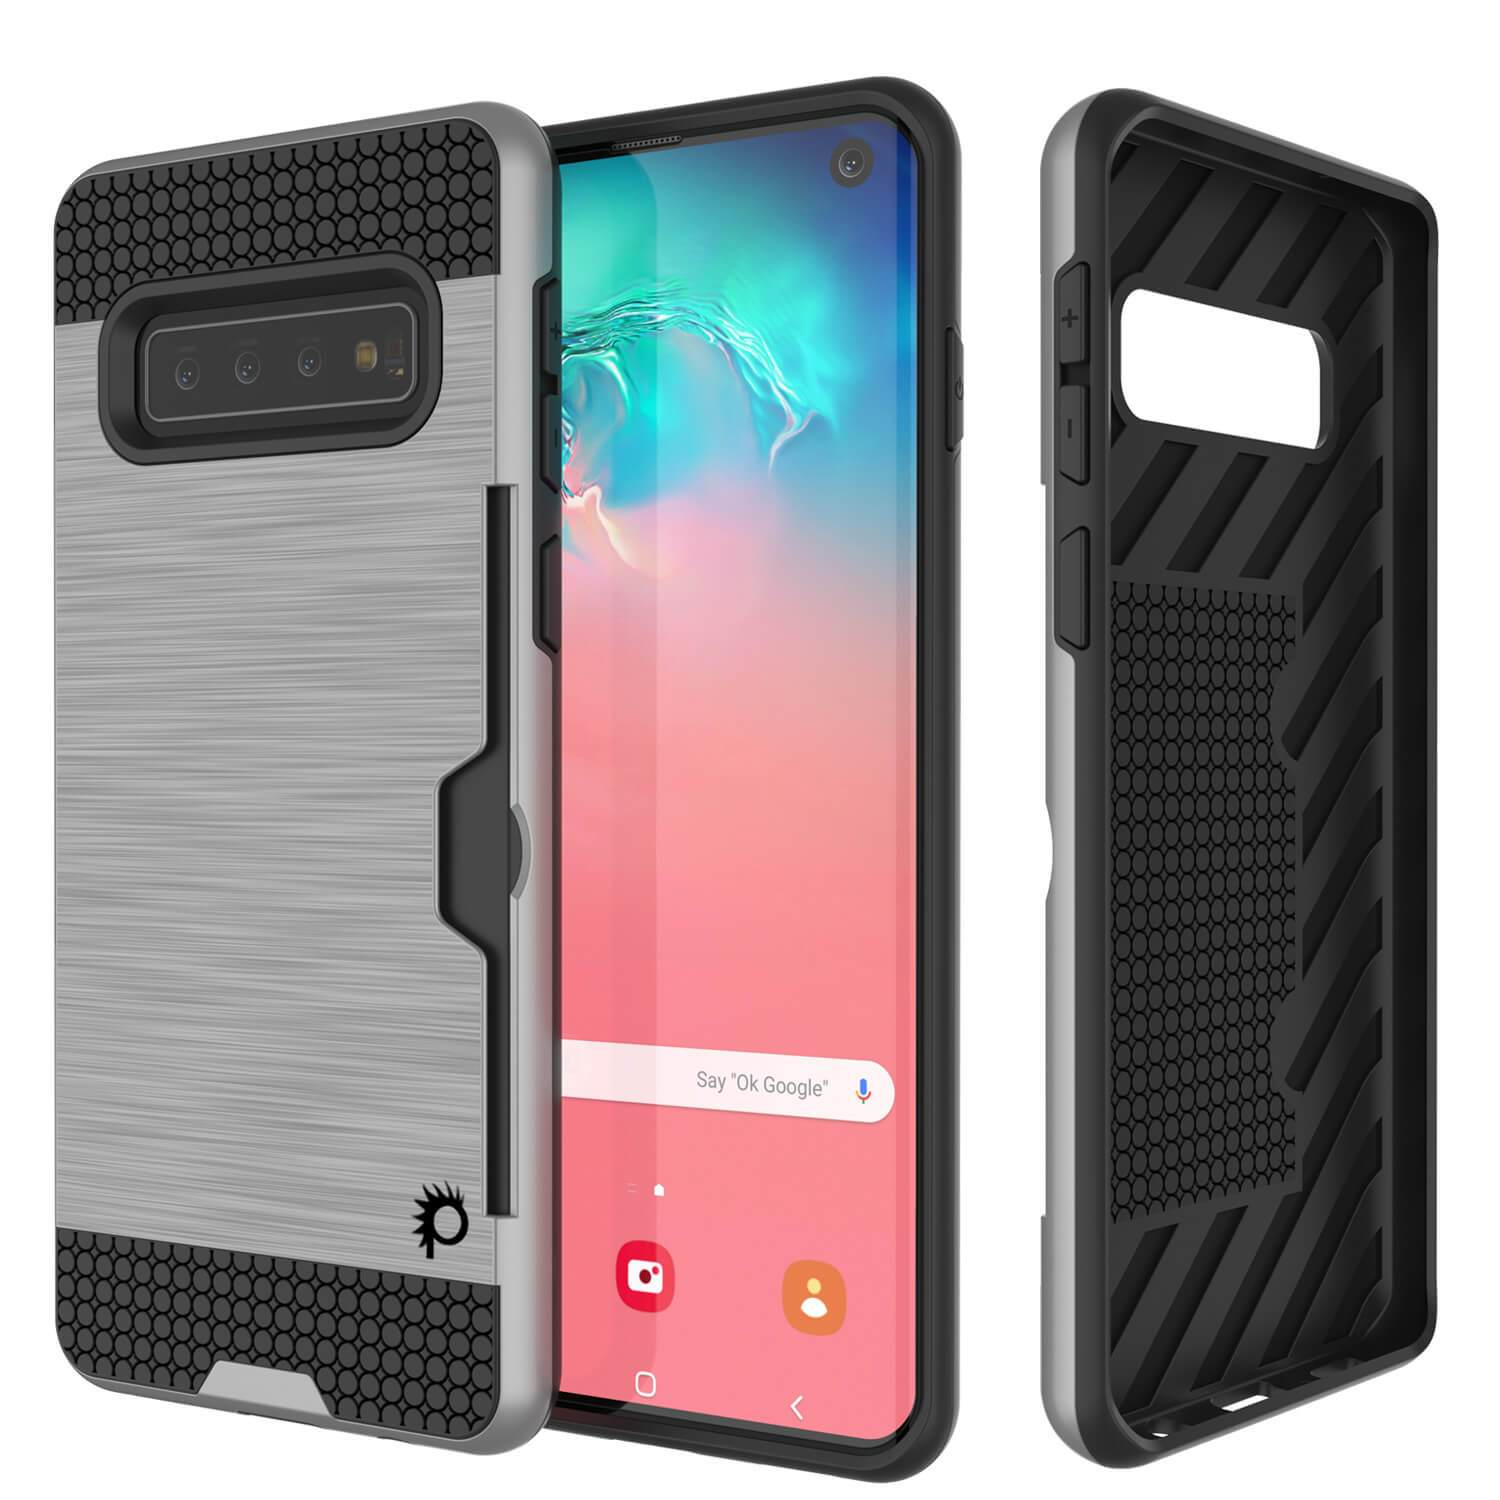 Galaxy S10e Case, PUNKcase [SLOT Series] [Slim Fit] Dual-Layer Armor Cover w/Integrated Anti-Shock System, Credit Card Slot [Silver]